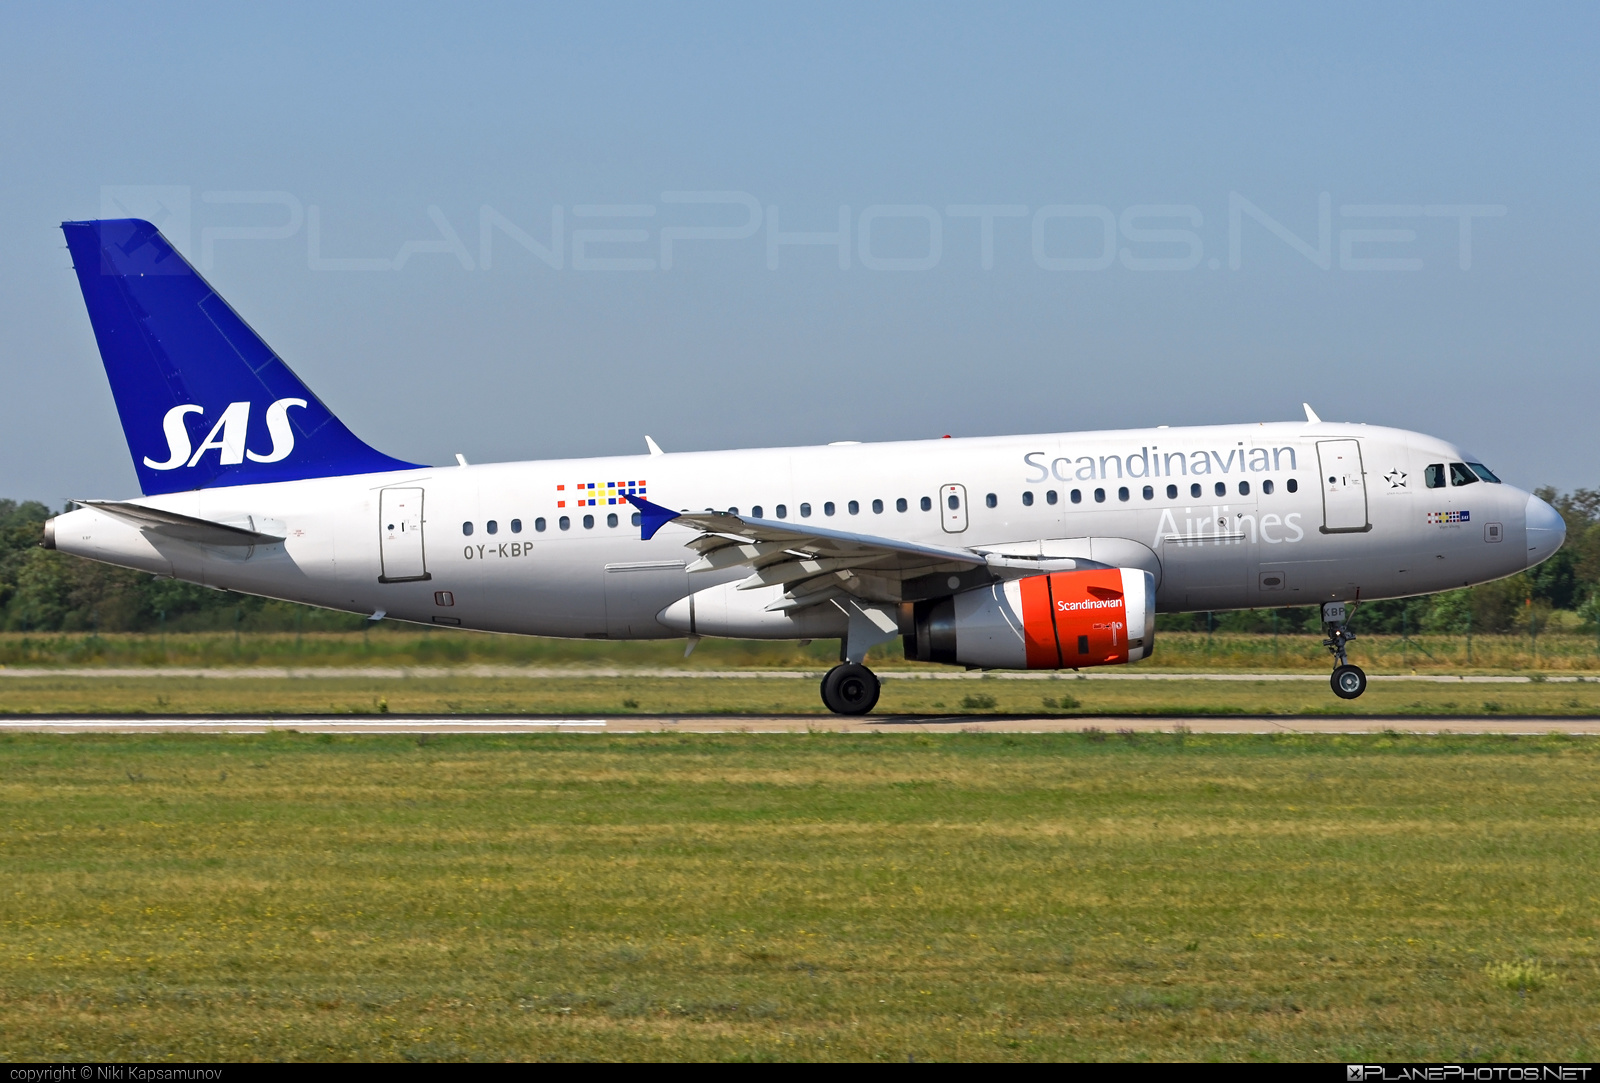 Airbus A319-132 - OY-KBP operated by Scandinavian Airlines (SAS) #a319 #a320family #airbus #airbus319 #sas #sasairlines #scandinavianairlines